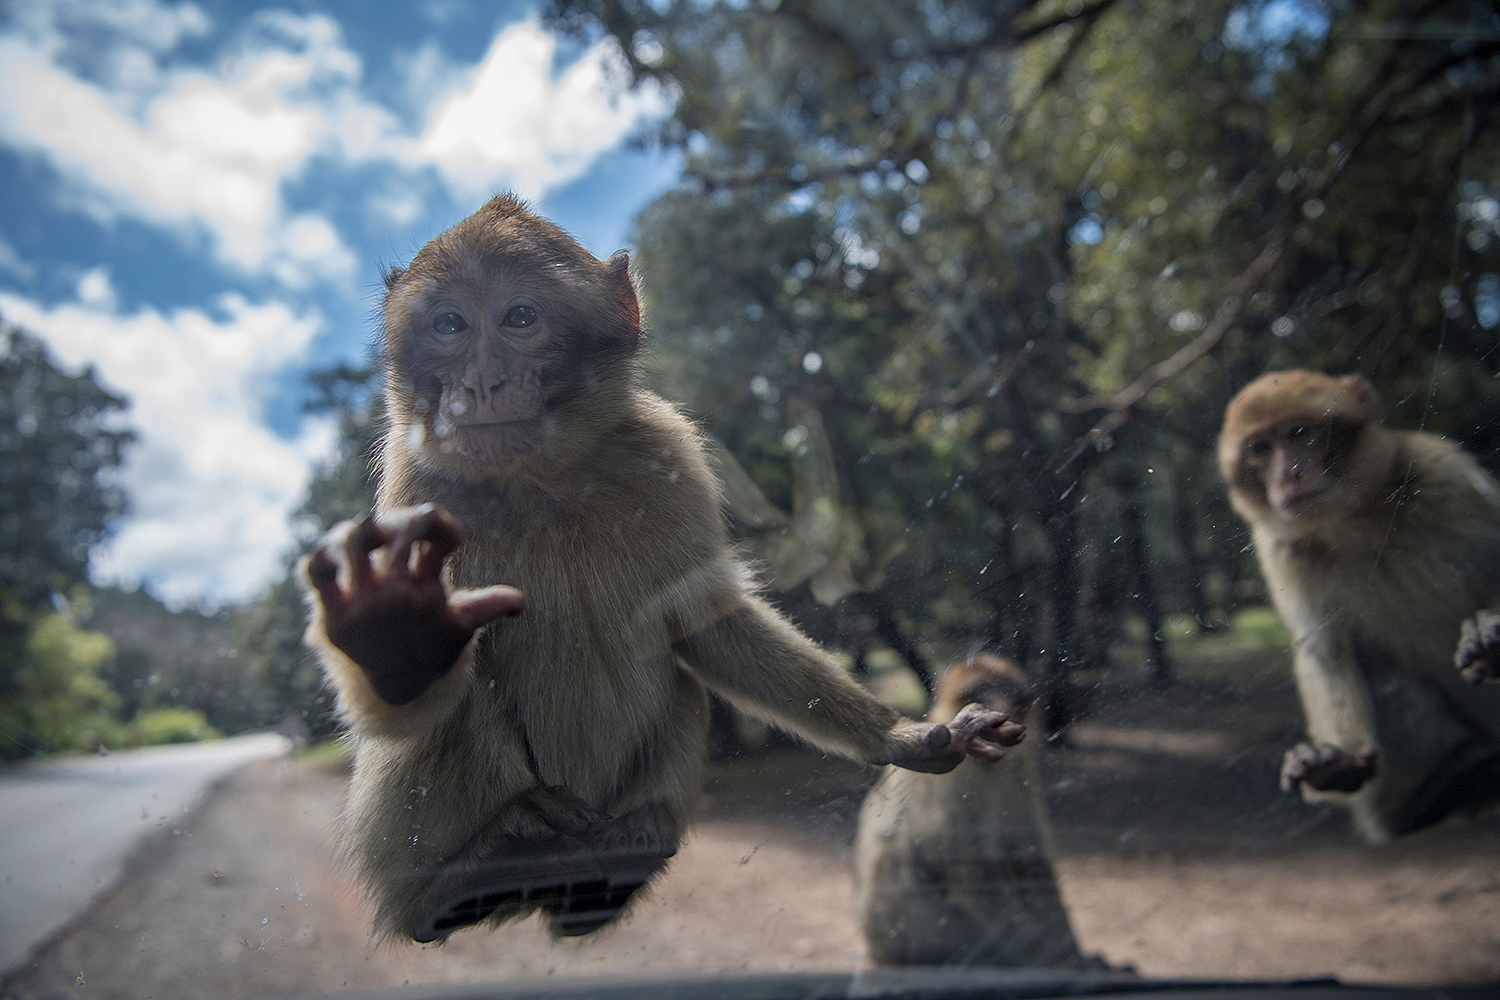 Barbary macaque monkeys looking for food climb on top of a vehicle on a road in the forest of Azrou, a protected natural reserve, near the Moroccan city of Ifrane, on April 29. FADEL SENNA/AFP via Getty Images